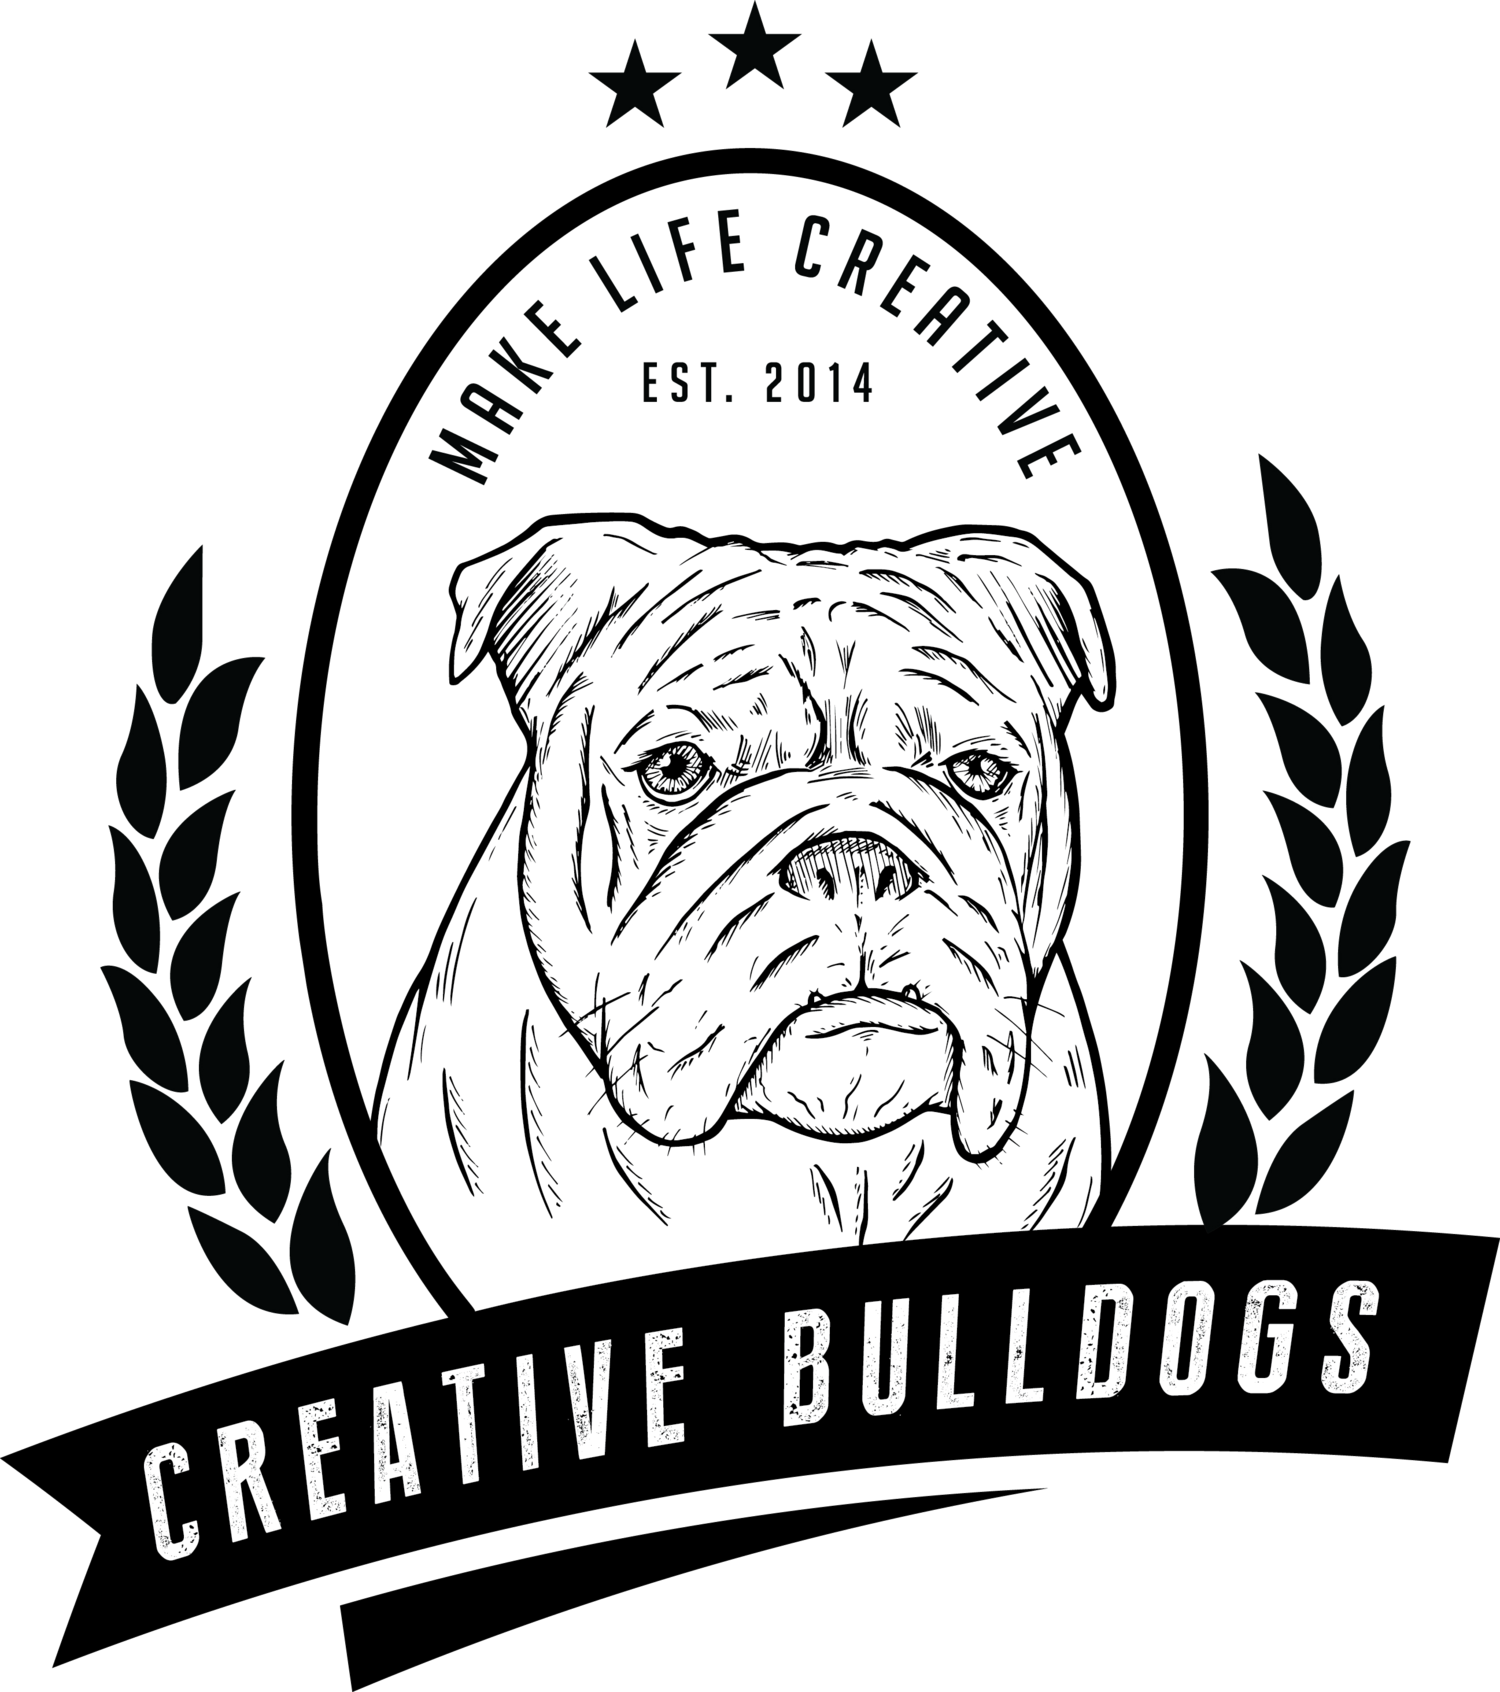 Creative Bulldogs